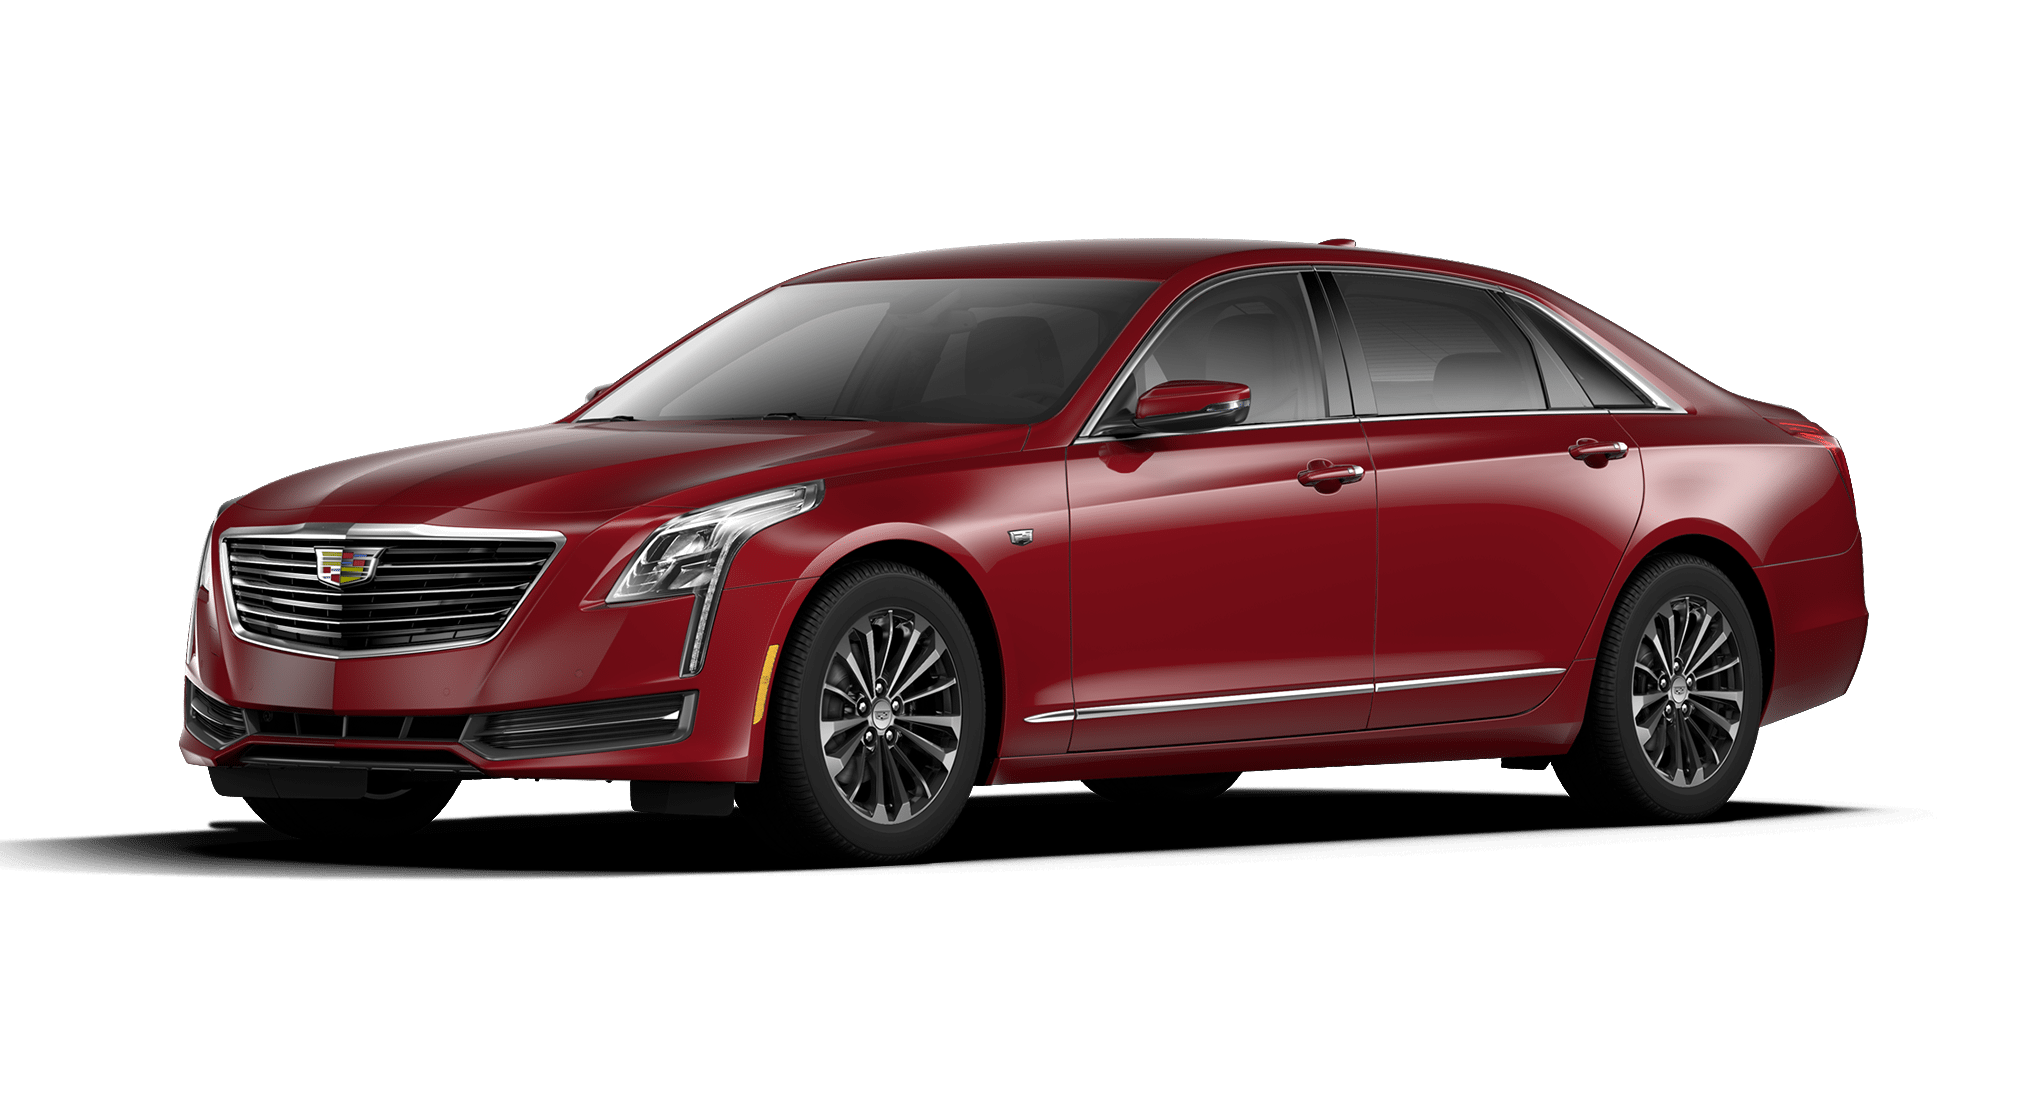 2017 Cadillac CT6 Red Passion Tincoat